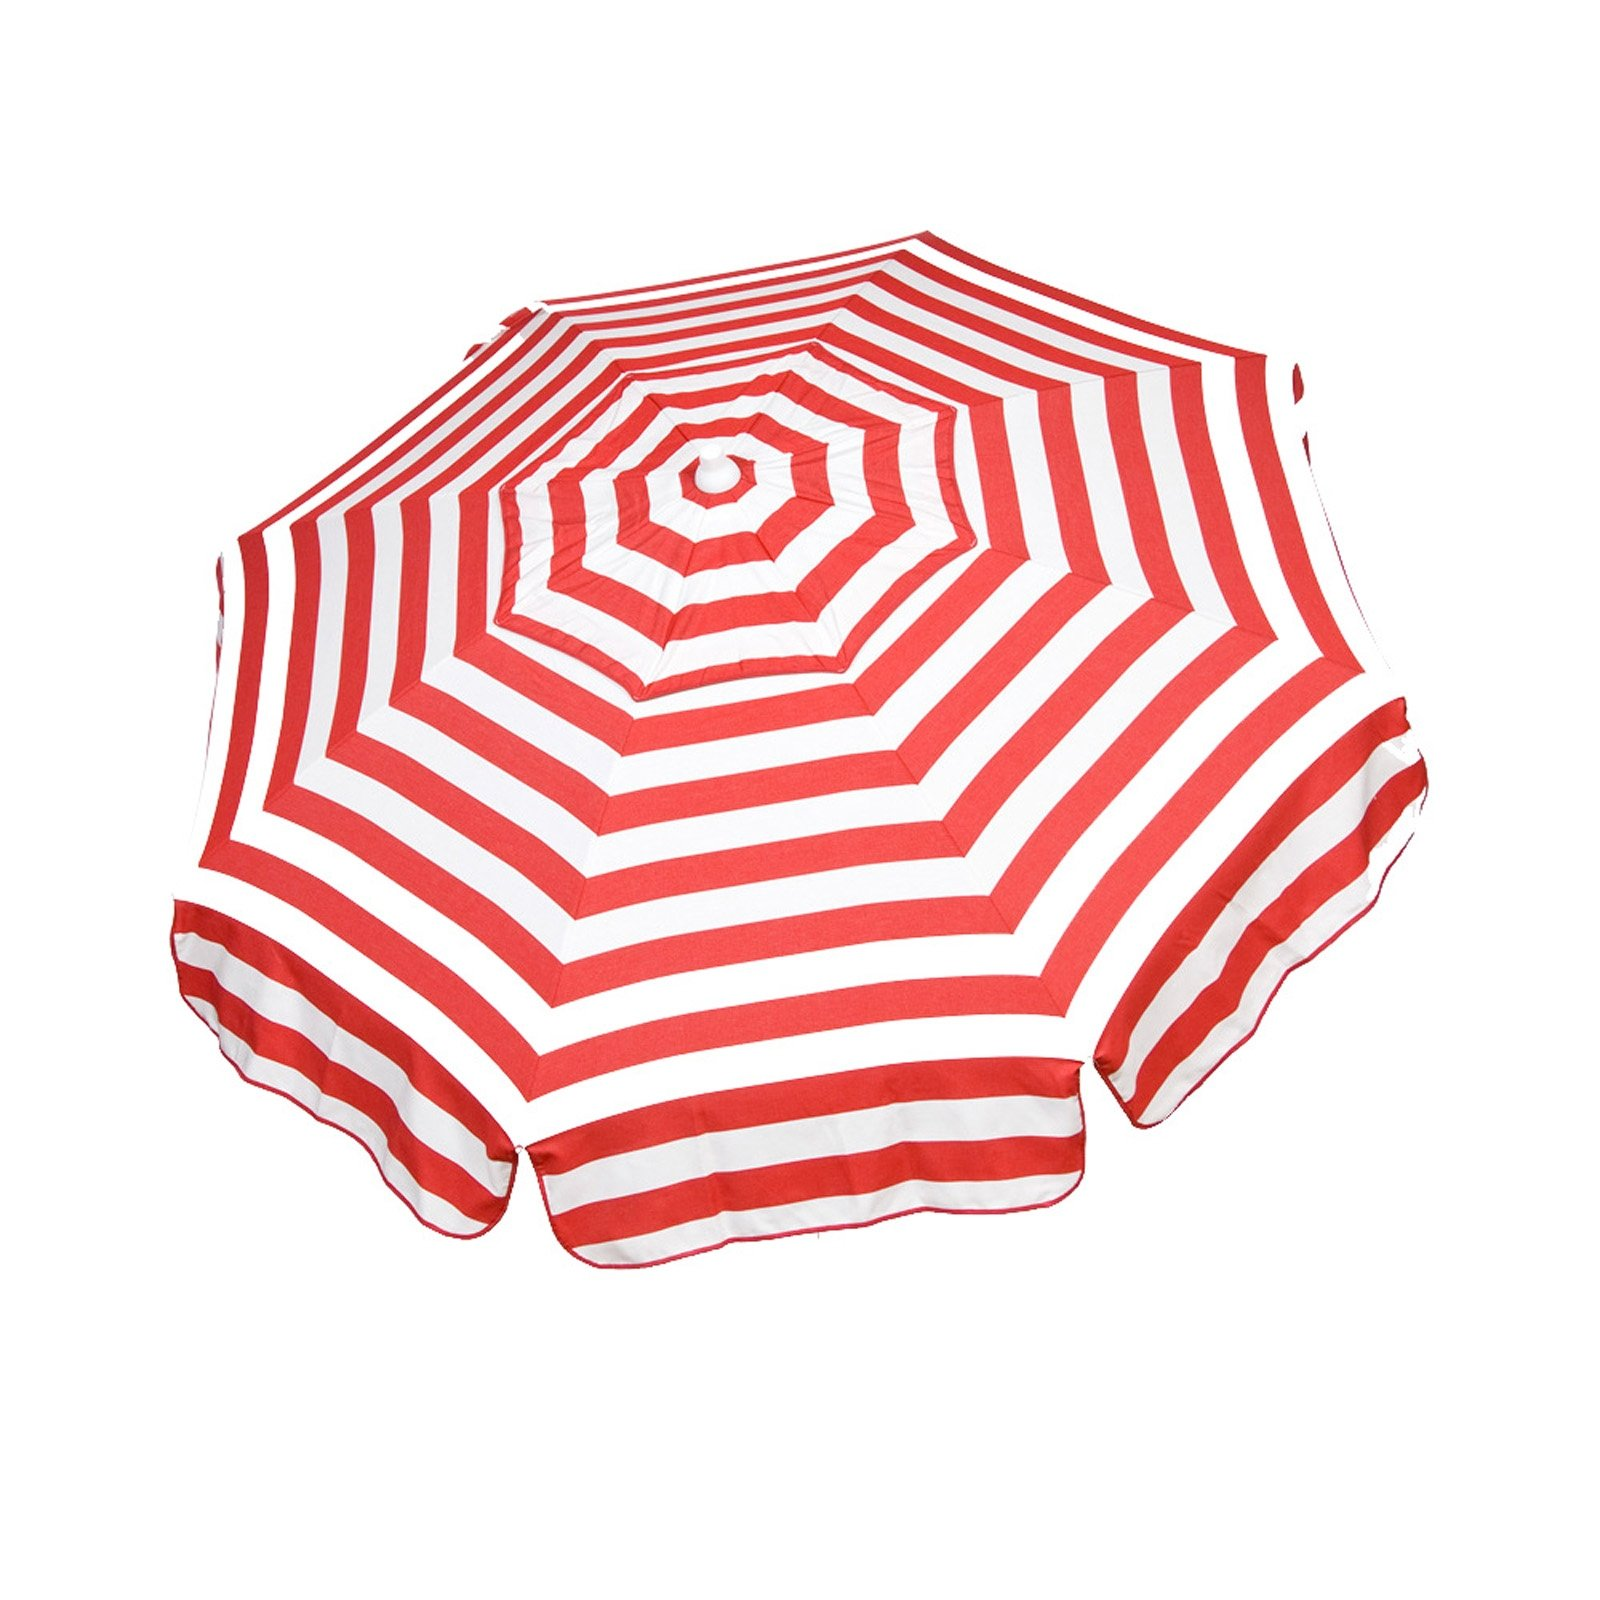 6ft Italian Market Tilt Umbrella Home Patio Canopy Sun Red Stripe- Beach Pole